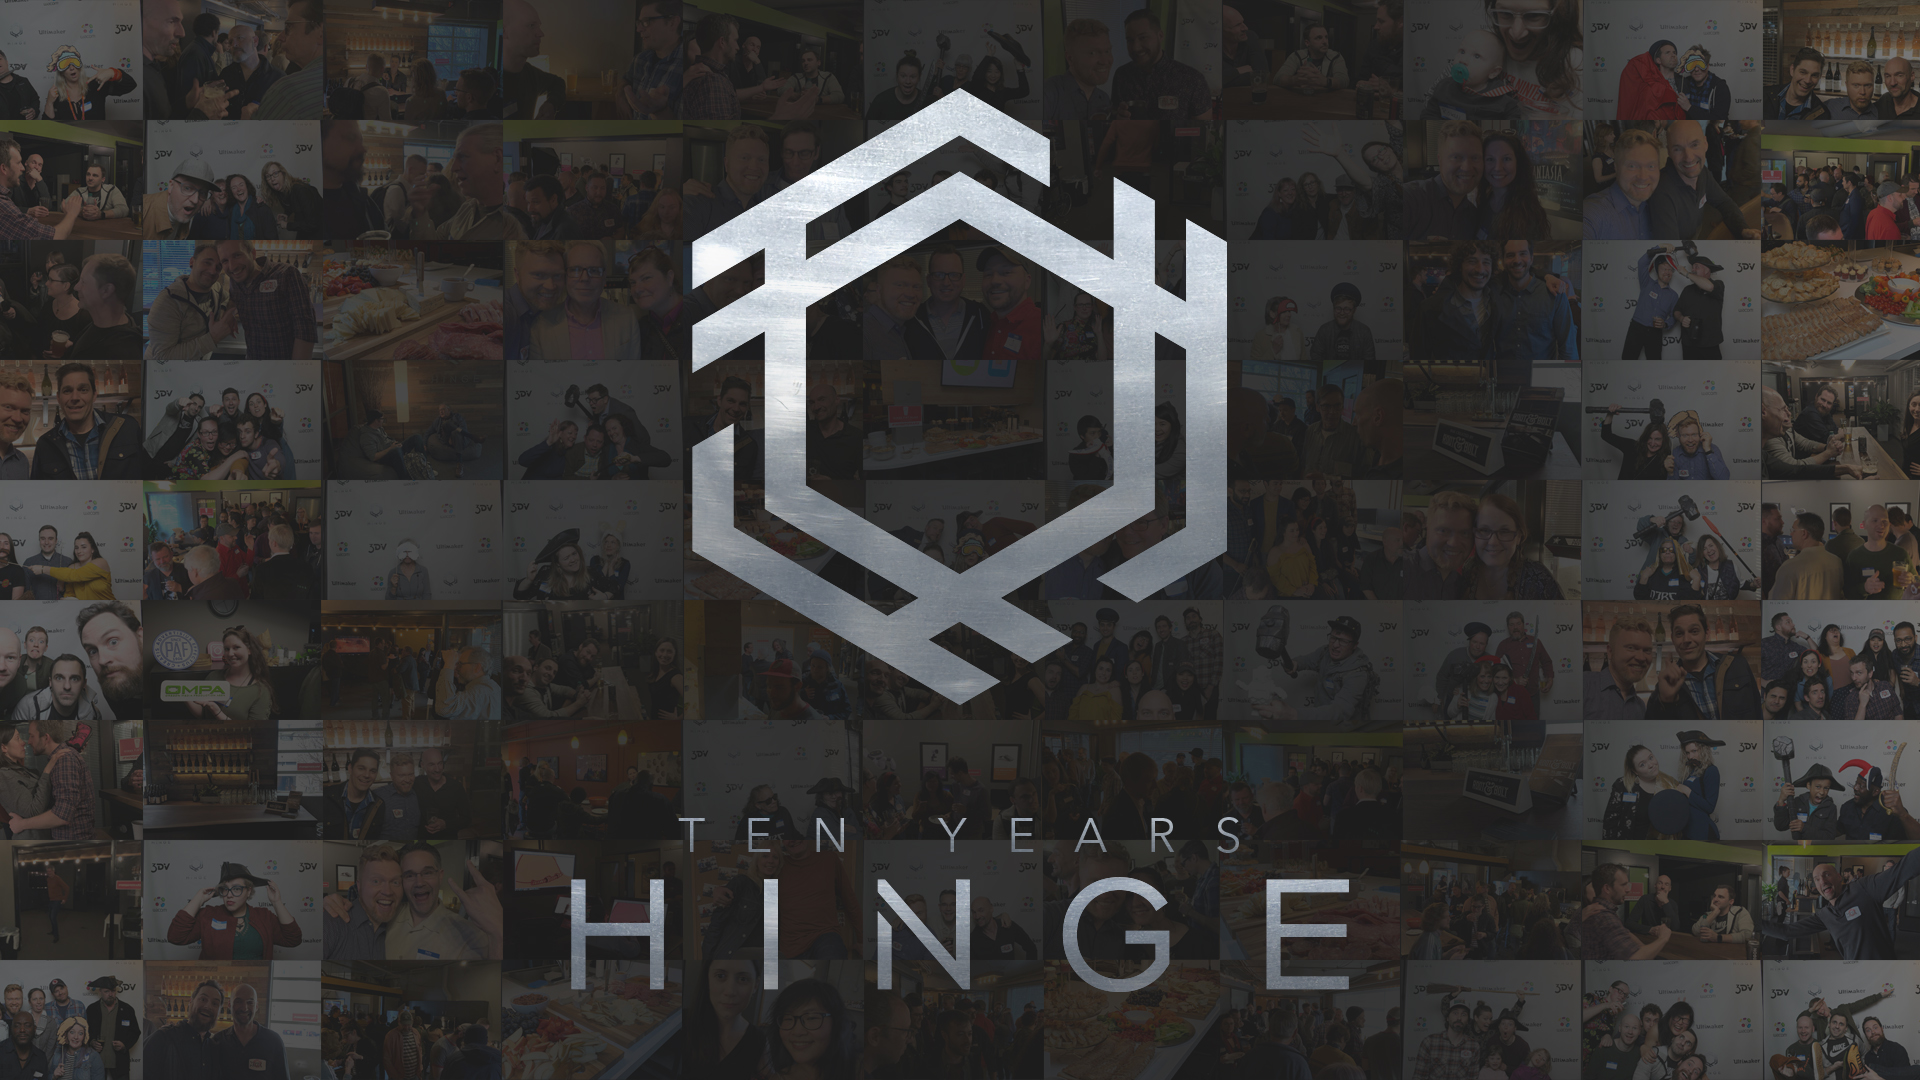 A Hinge 10th Anniversary Party Retrospective